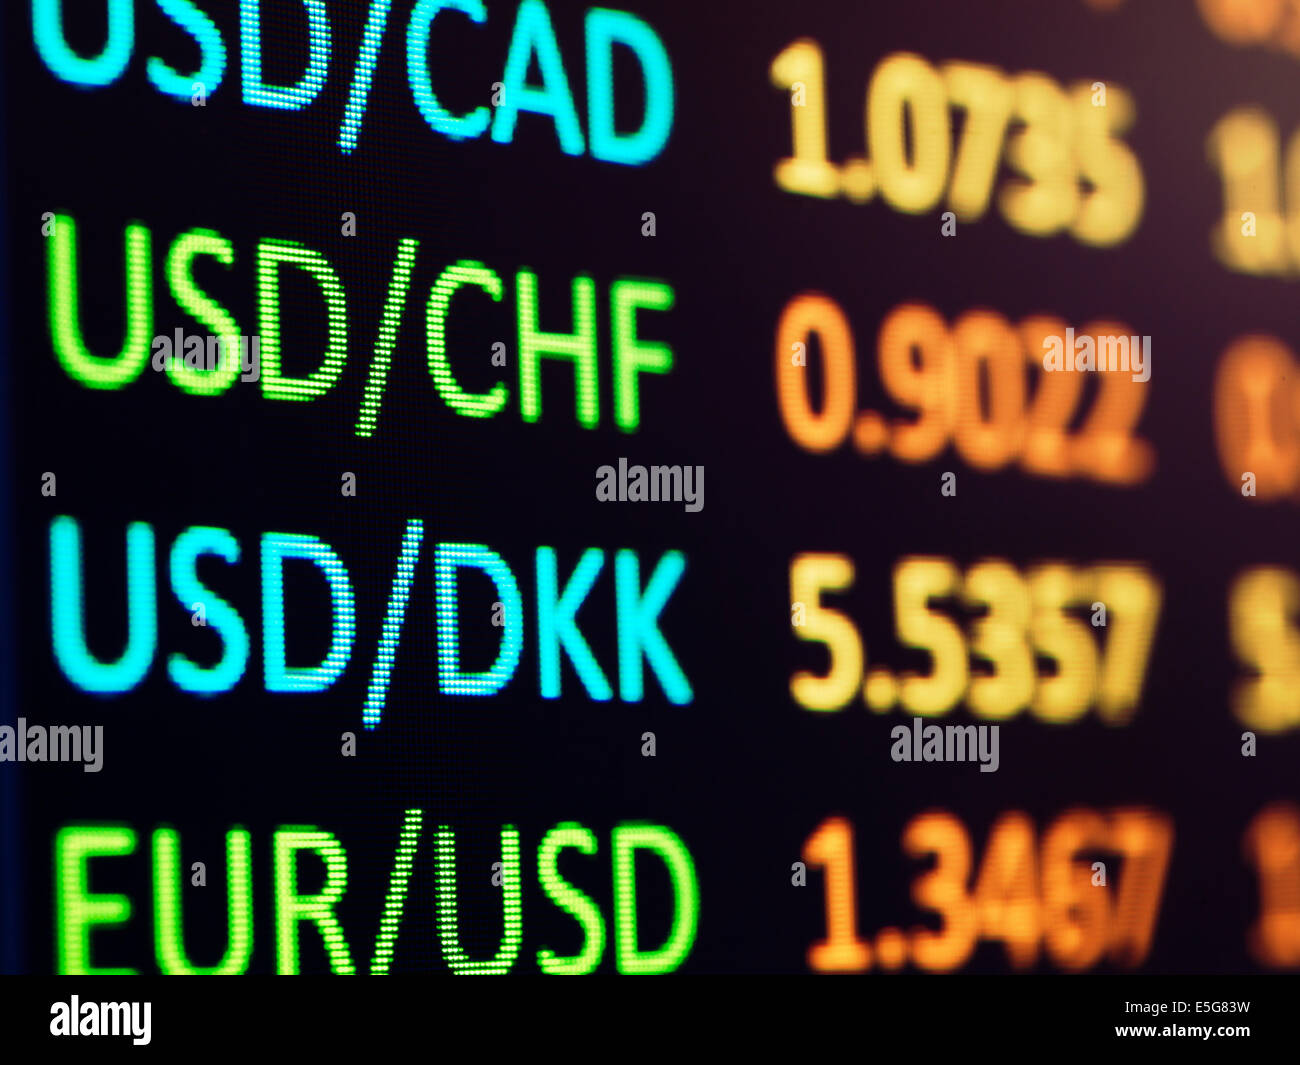 Forex currency exchange rates on electronic display closeup - Stock Image